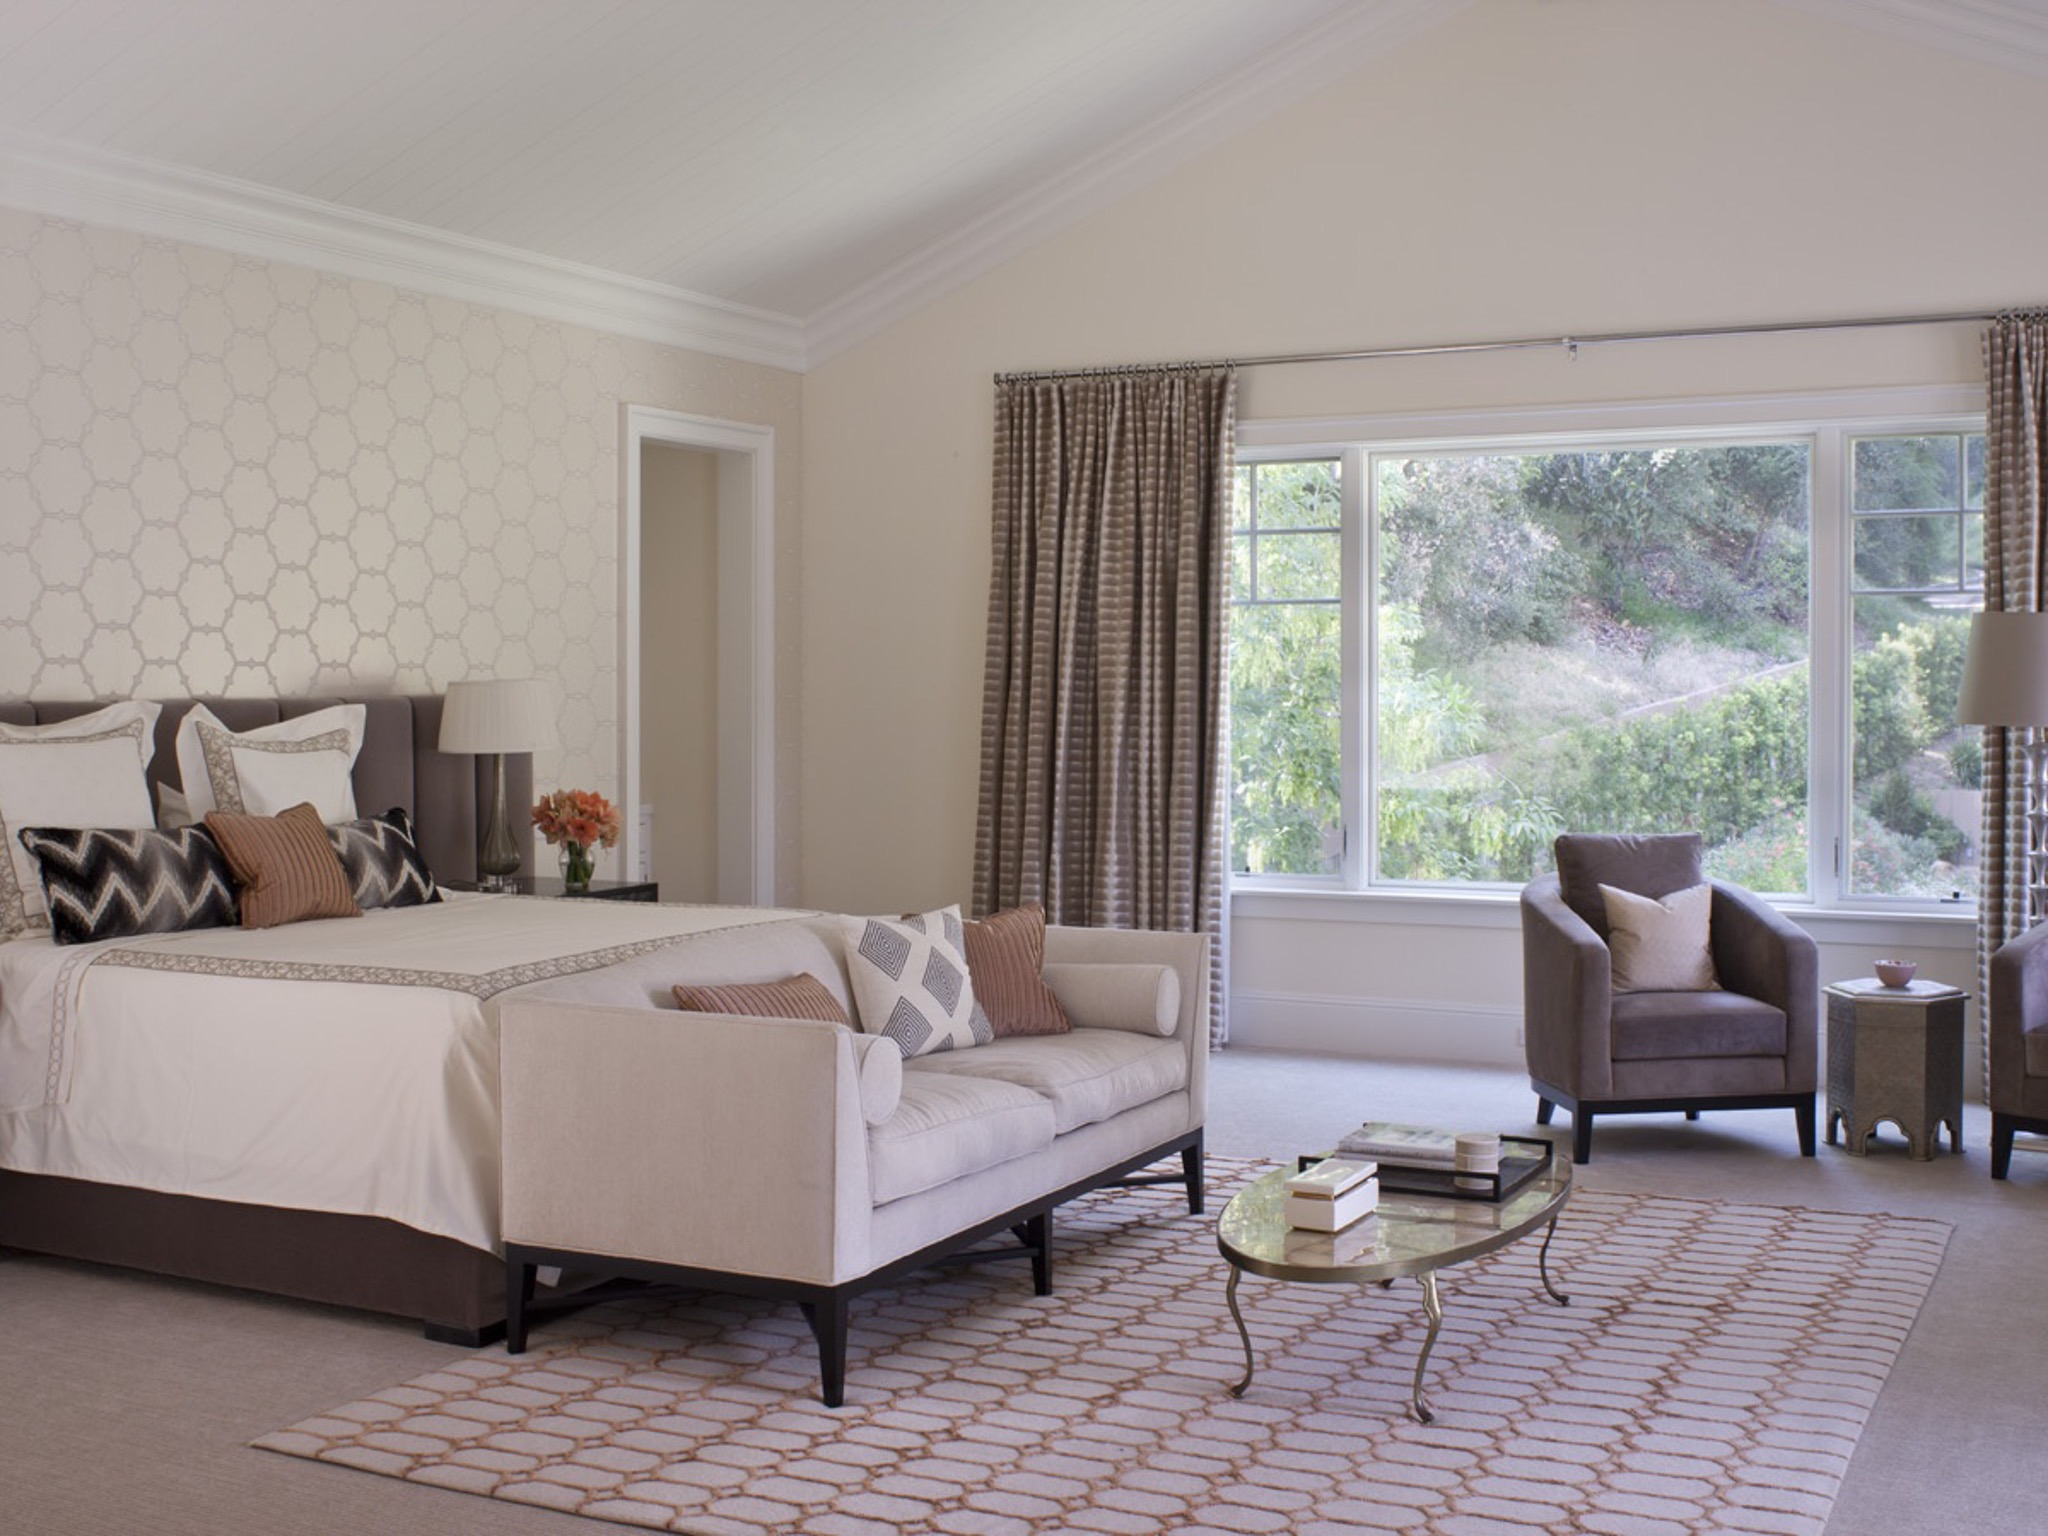 Classic Bedroom With Romantic Nuance (Photo 18 of 18)